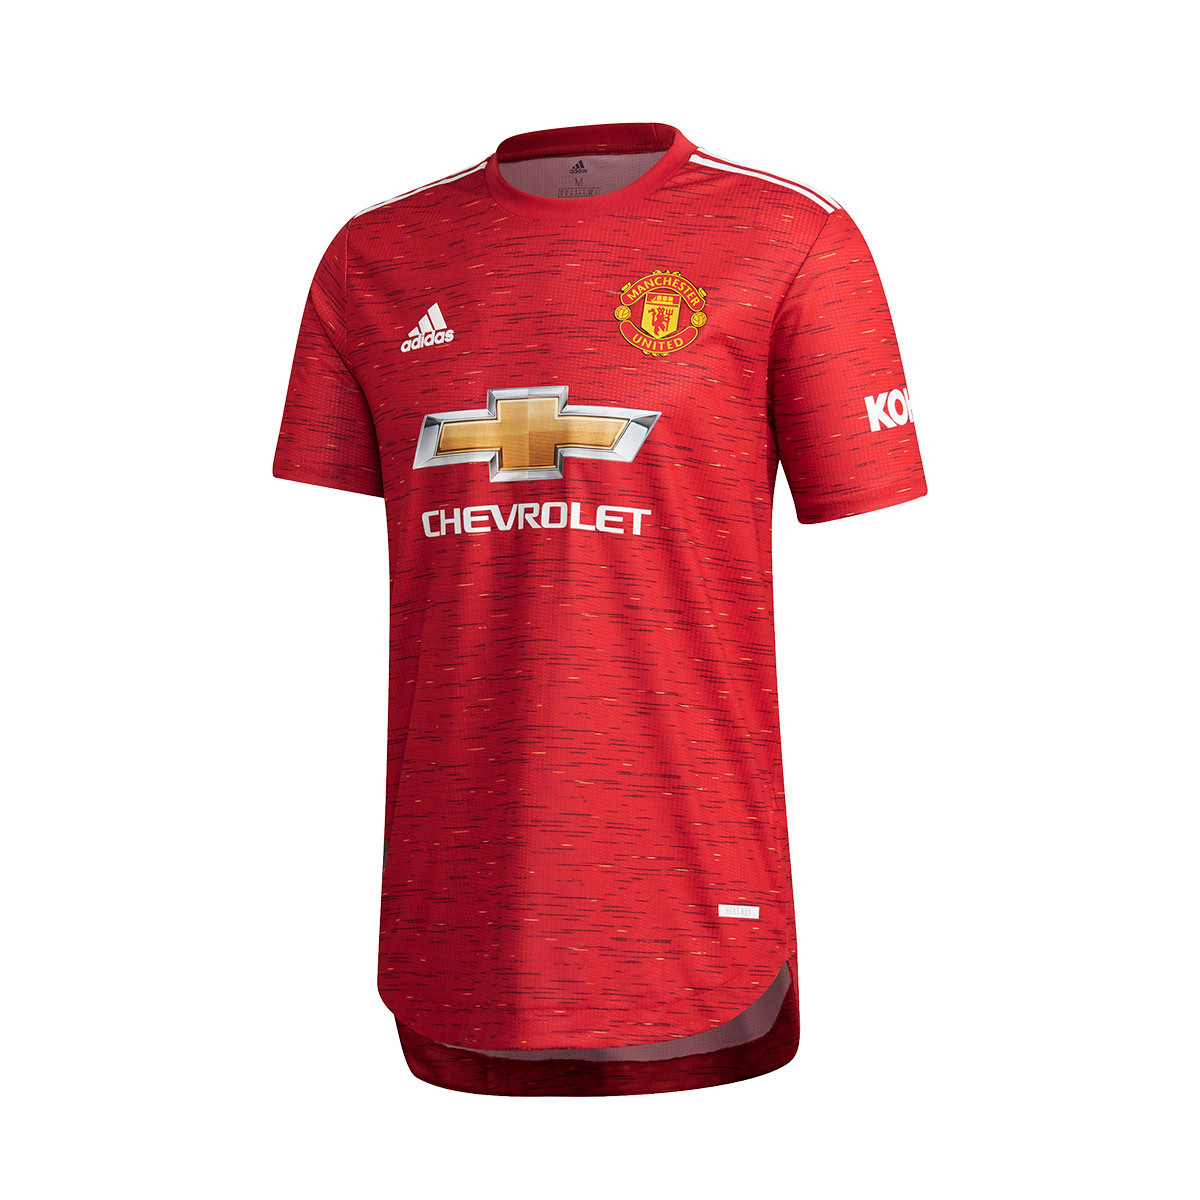 Jersey Adidas Manchester United Fc Primera Equipacion Authentic 2020 2021 Real Red Football Store Futbol Emotion